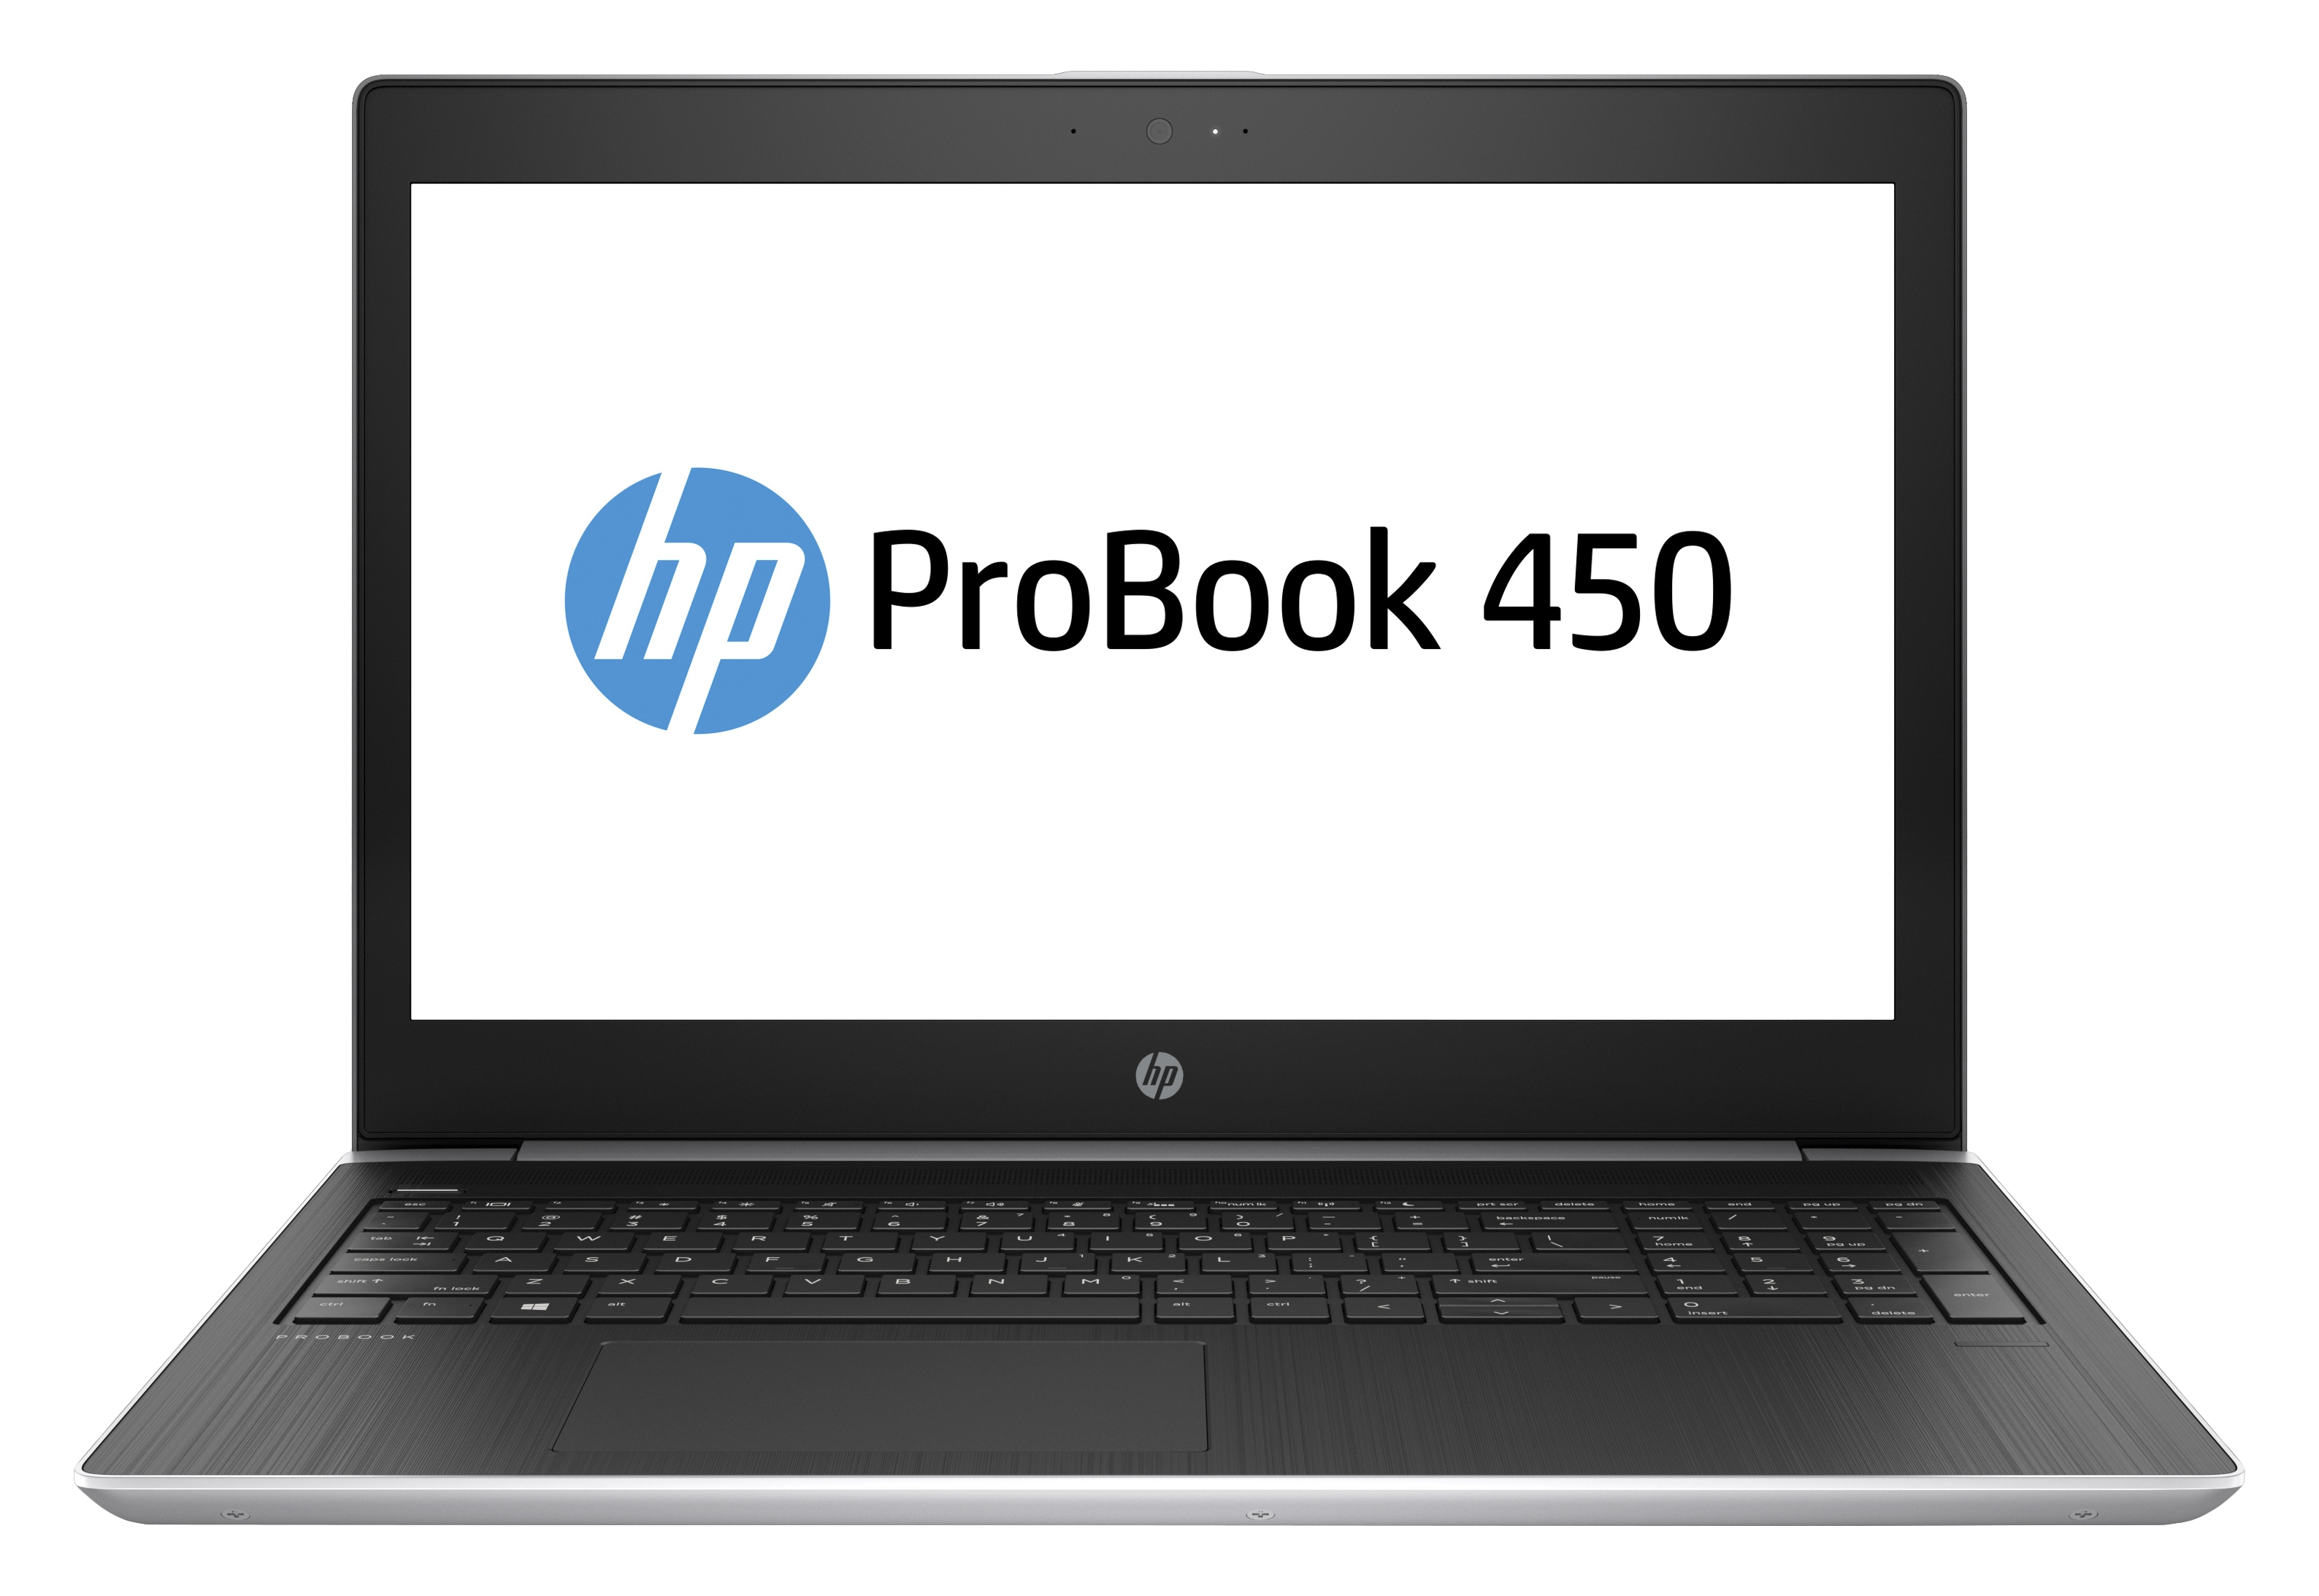 Ноутбук HP ProBook 450 G5 (i5-8250U,500Gb,8Gb,128SSD,Windows 10 Pro) 15.6""